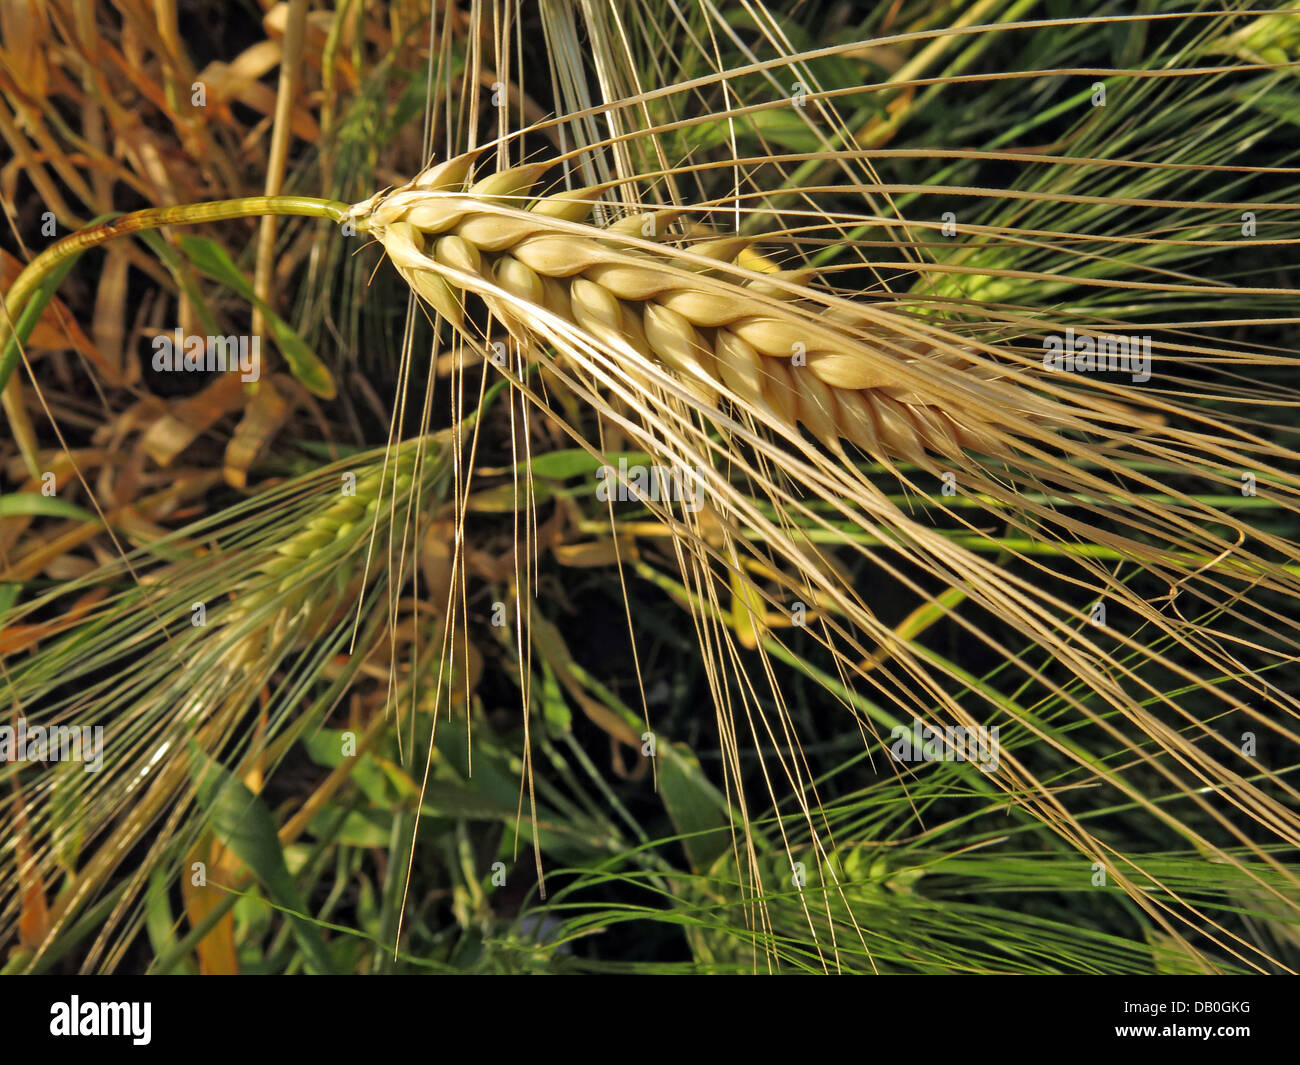 Sun,sunny,isolated,macro,close,up,closeup,close-up,cereal,grain,british,Wheat,English,england,field,farmer,farmers,farming,arable,grain,world,trade,vegetable,protein,food,Triticeae,Triticum,starch,endosperm,ear,white,flour,Gluten,sensitivity,sensitive,undetected,coeliac,disease,celiac,gliadin,Gotonysmith,barley,and,rye,gliadin,the,enzyme,tissue,transglutaminase,gluten-free,diet,glutenfree,harvested,harvests,festival,high,quality,prices,price,bushel,yield,improvement,futures,producer,low,crop,anthesis,stage,Whole,golden,gold,Buy Pictures of,Buy Images Of